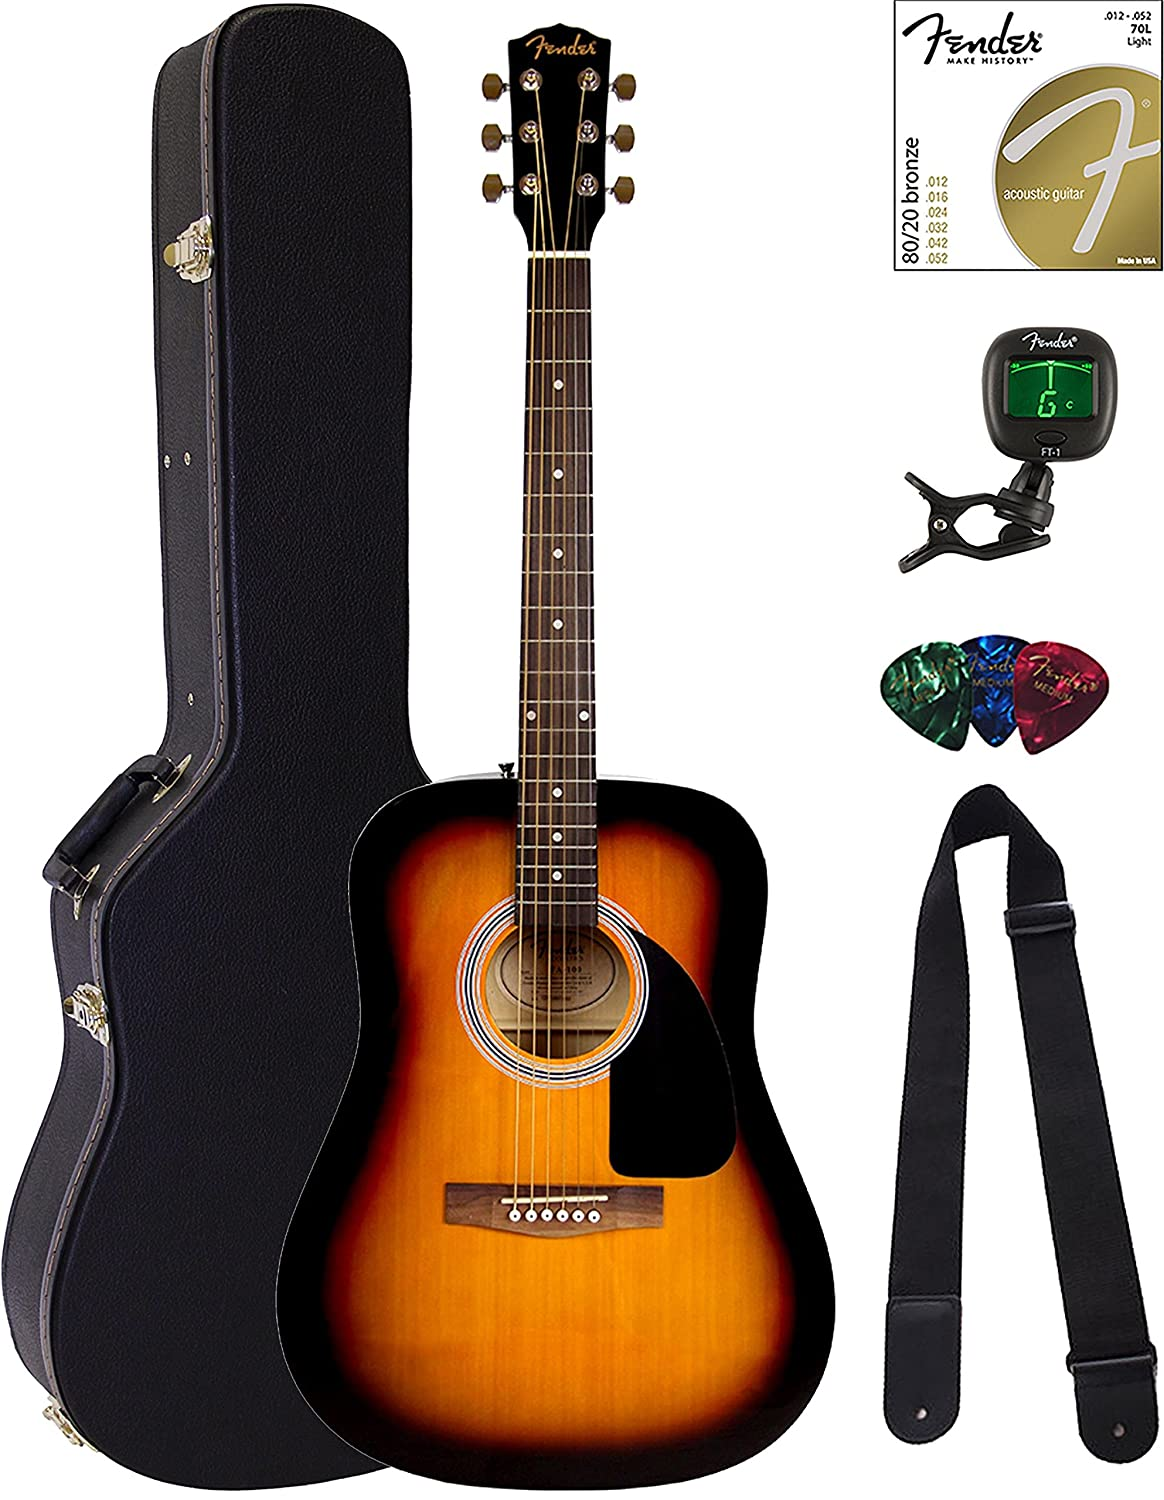 Fender FA-115 Dreadnought Acoustic Guitar - Sunburst Bundle with Gig Bag, Tuner, Strings, Strap, and Picks 0971110532-COMBO-FGPAC1